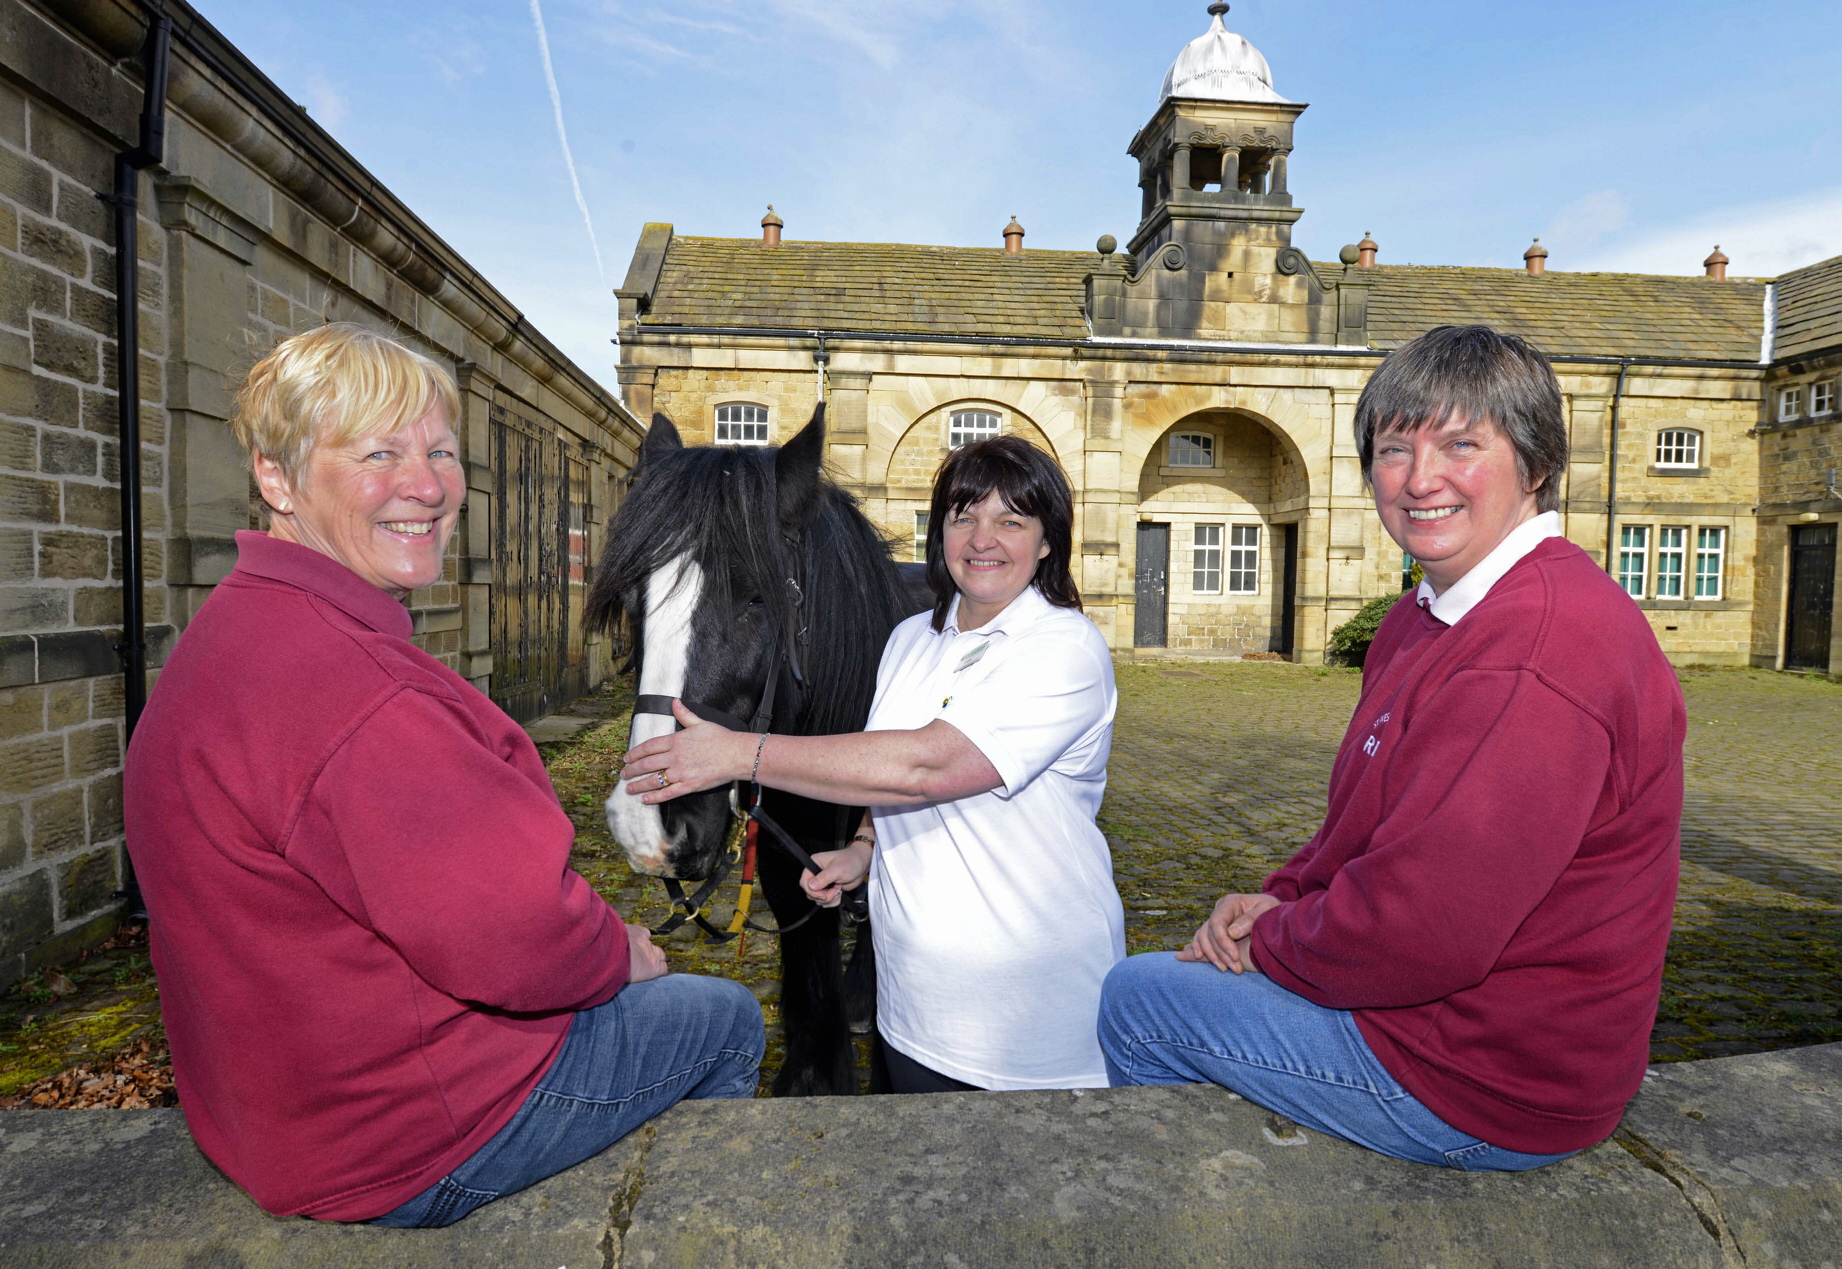 Louise Forbes, centre, of the Yorkshire Building Society, with, from